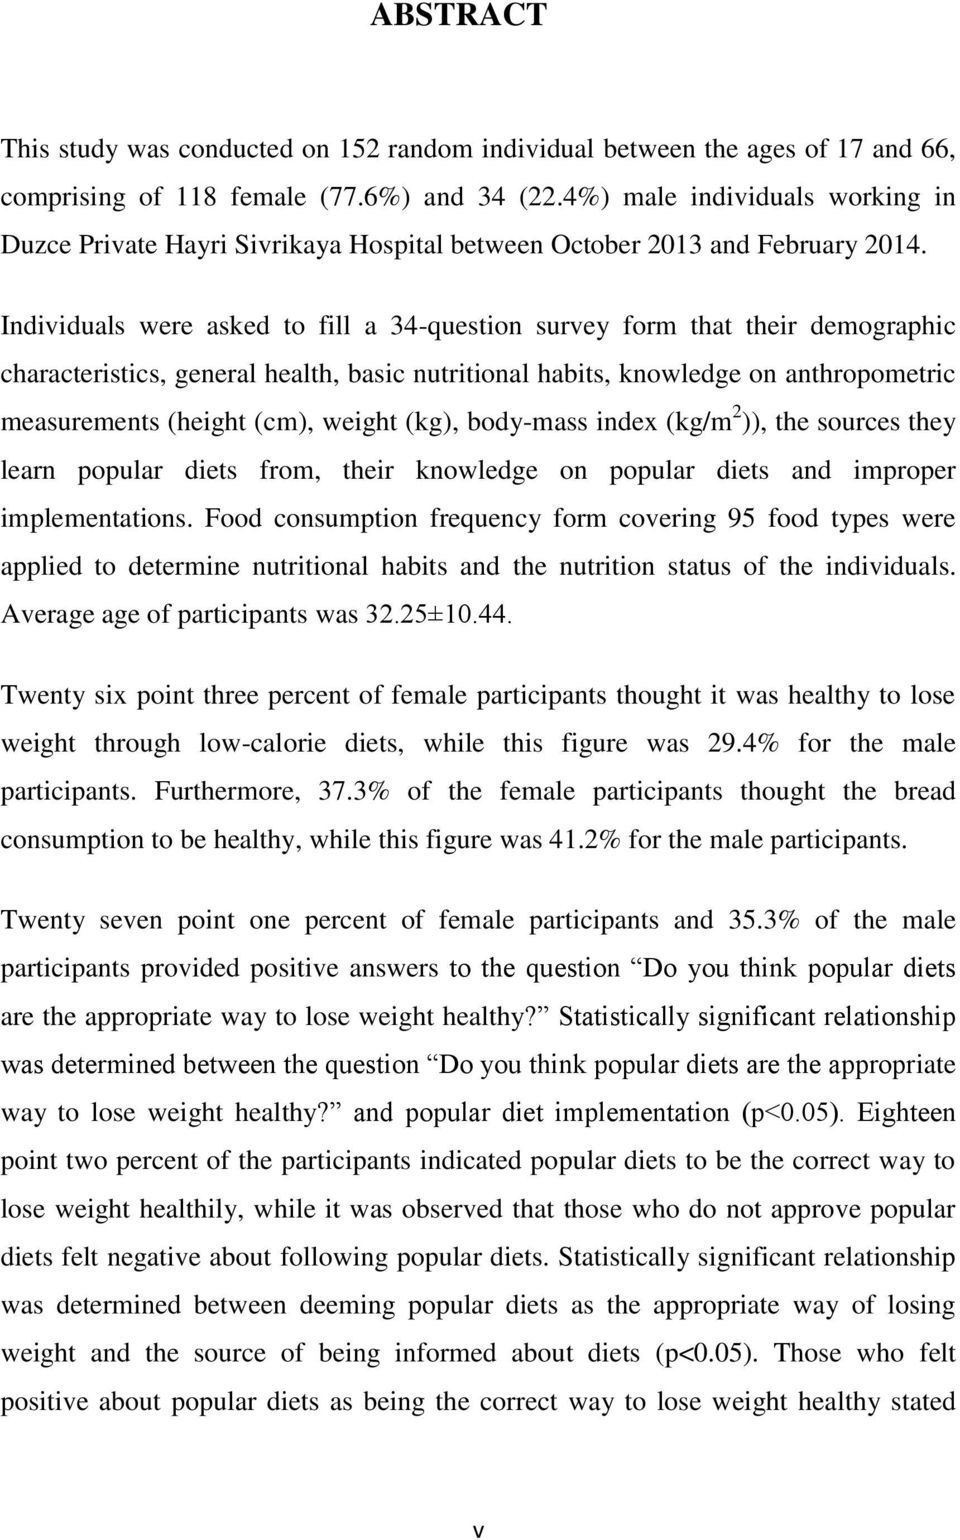 Individuals were asked to fill a 34-question survey form that their demographic characteristics, general health, basic nutritional habits, knowledge on anthropometric measurements (height (cm),